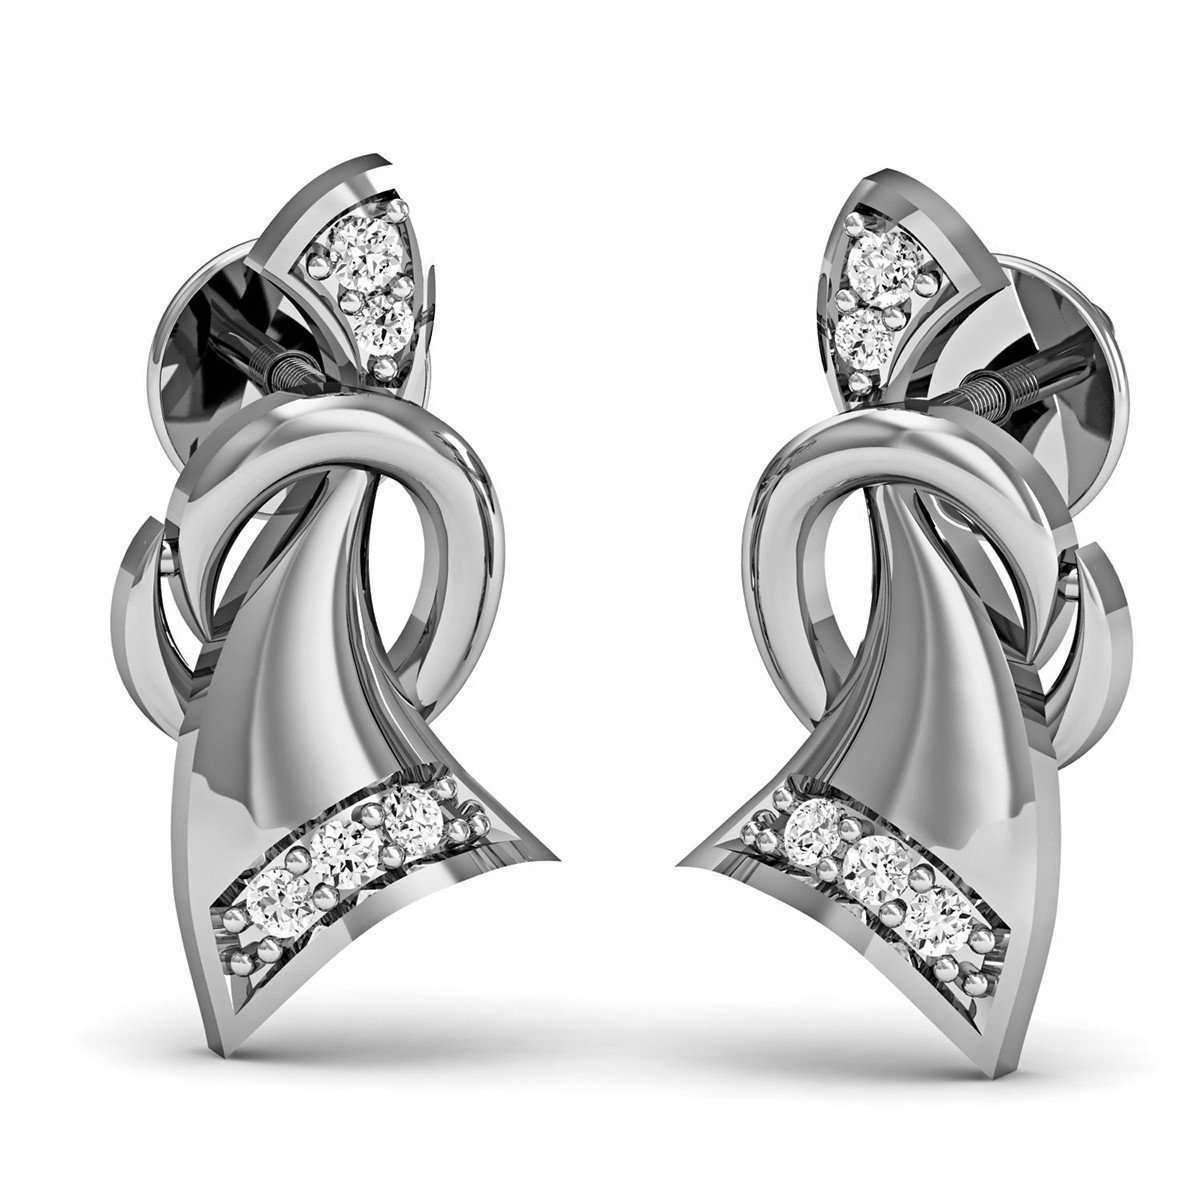 Diamoire Jewels 14kt White Gold and Premium Diamonds Pave Earrings qLX0N